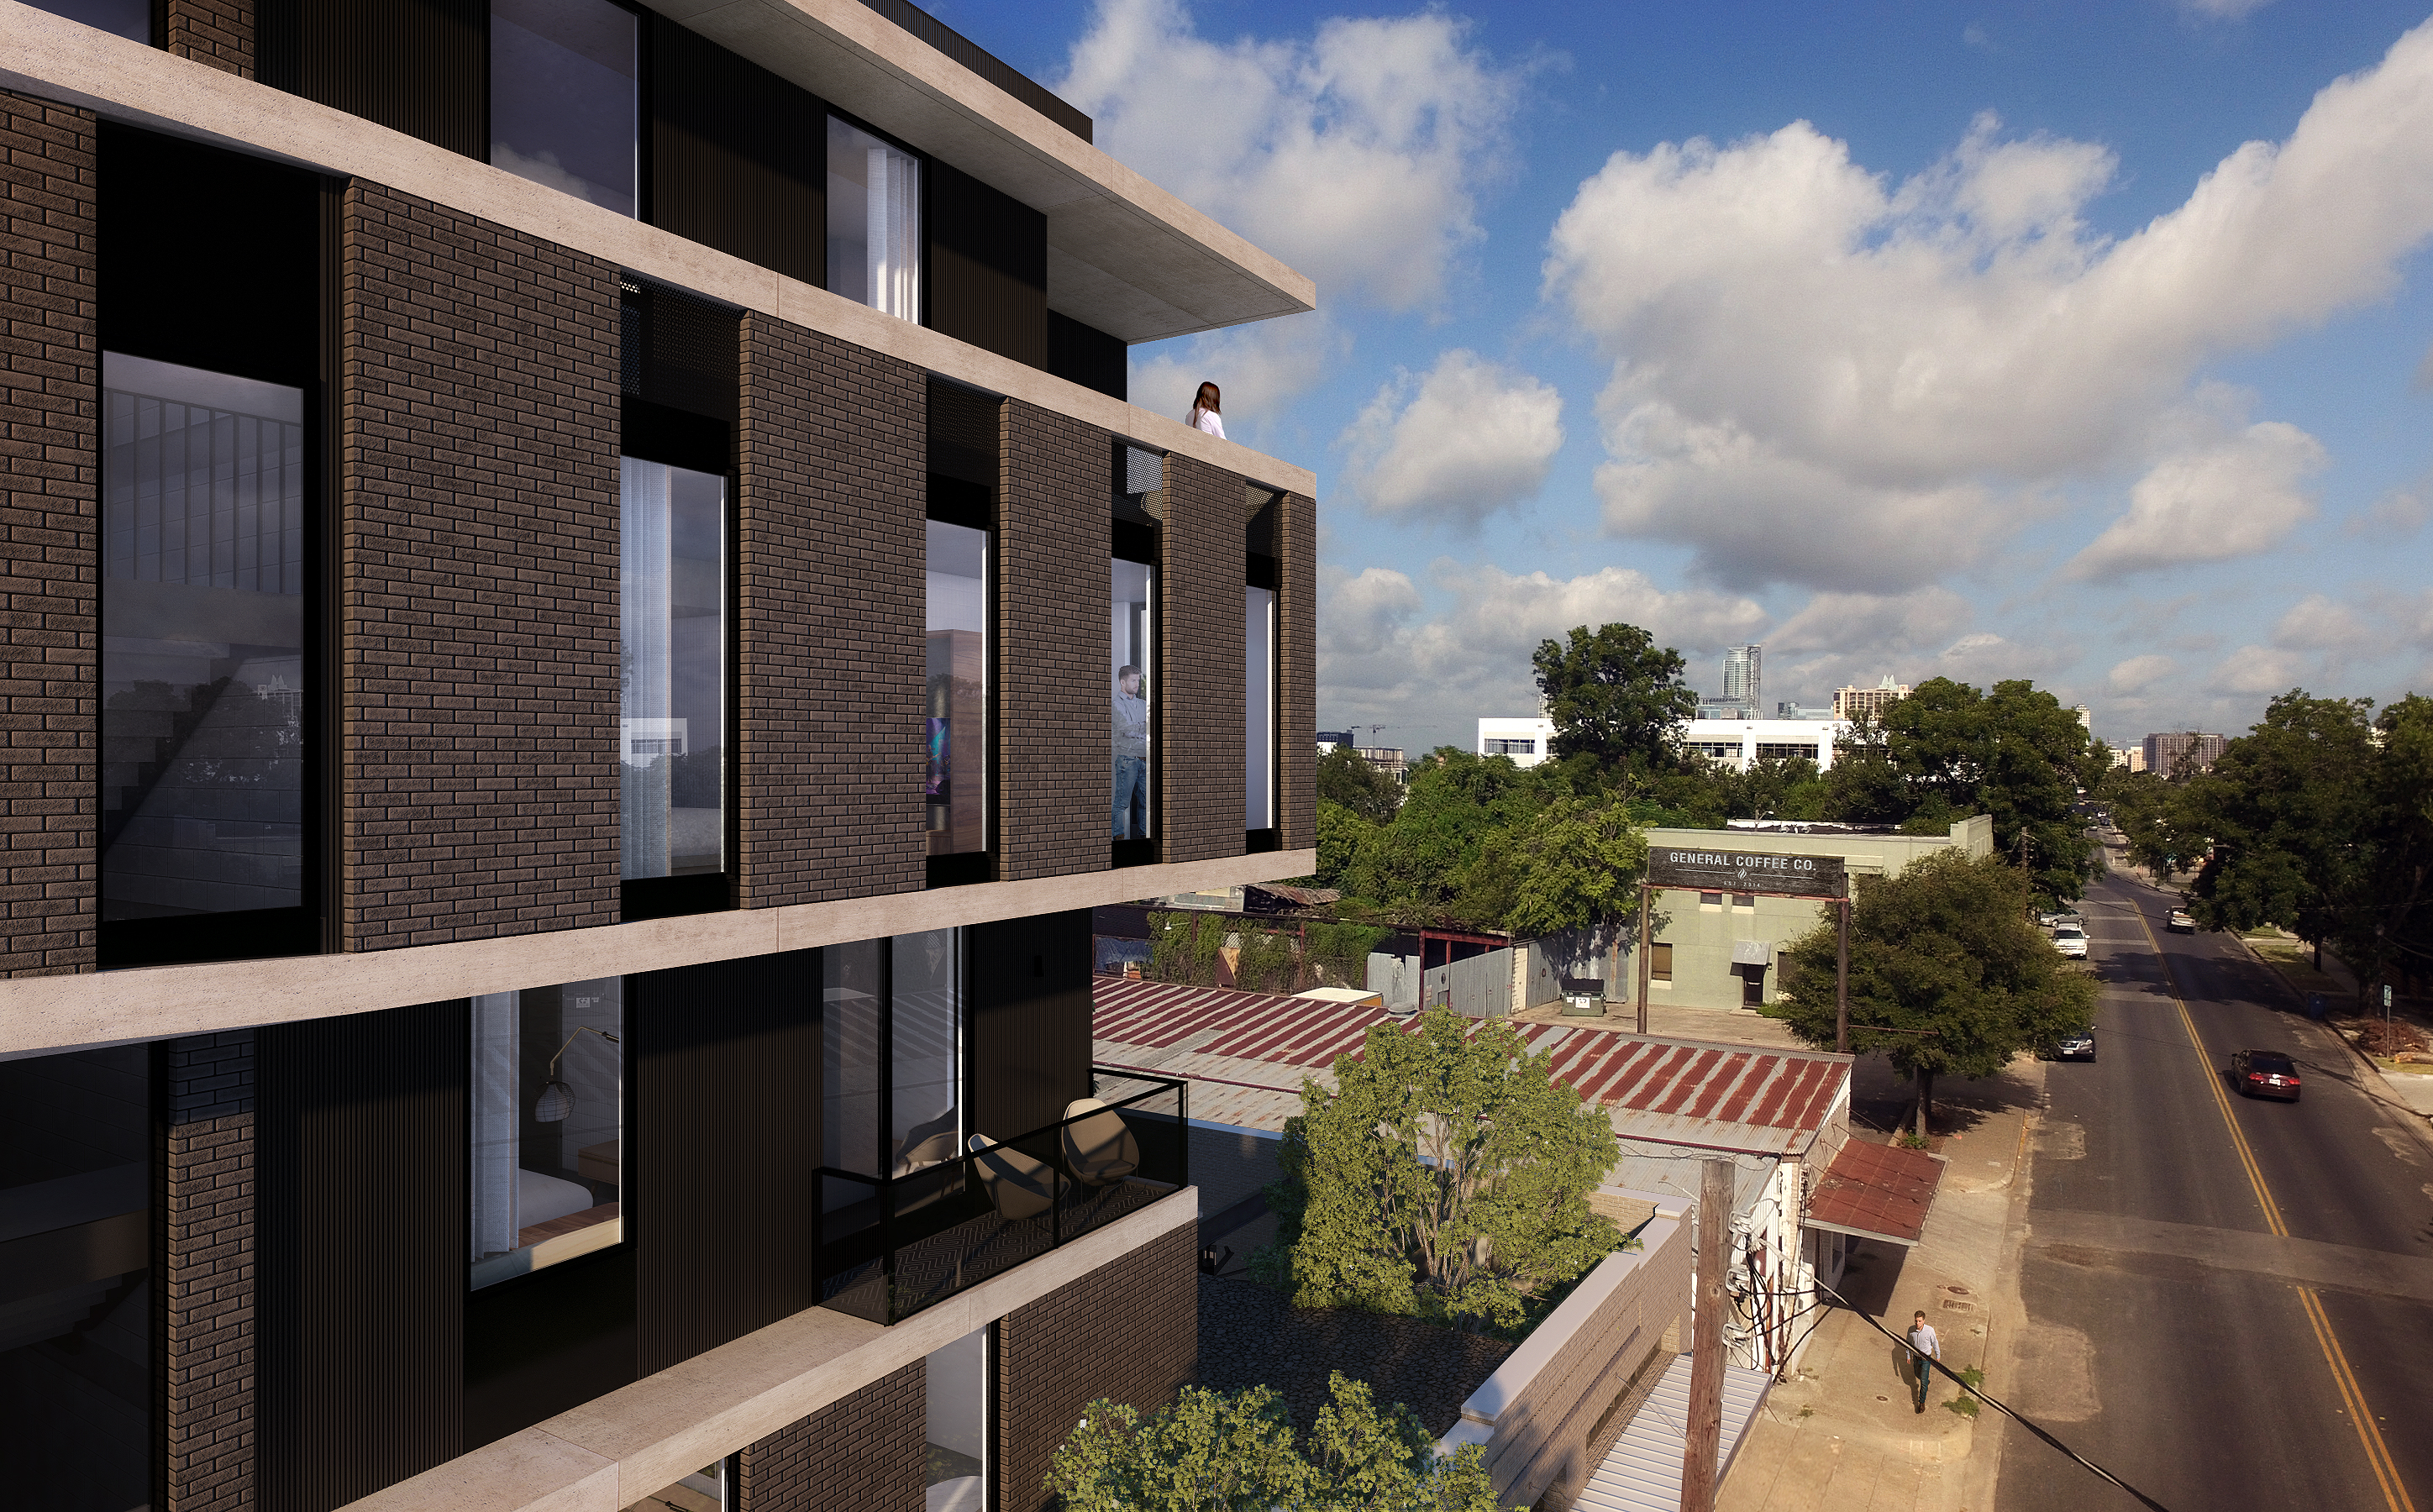 83 Room Boutique Hotel To Open In East Austin